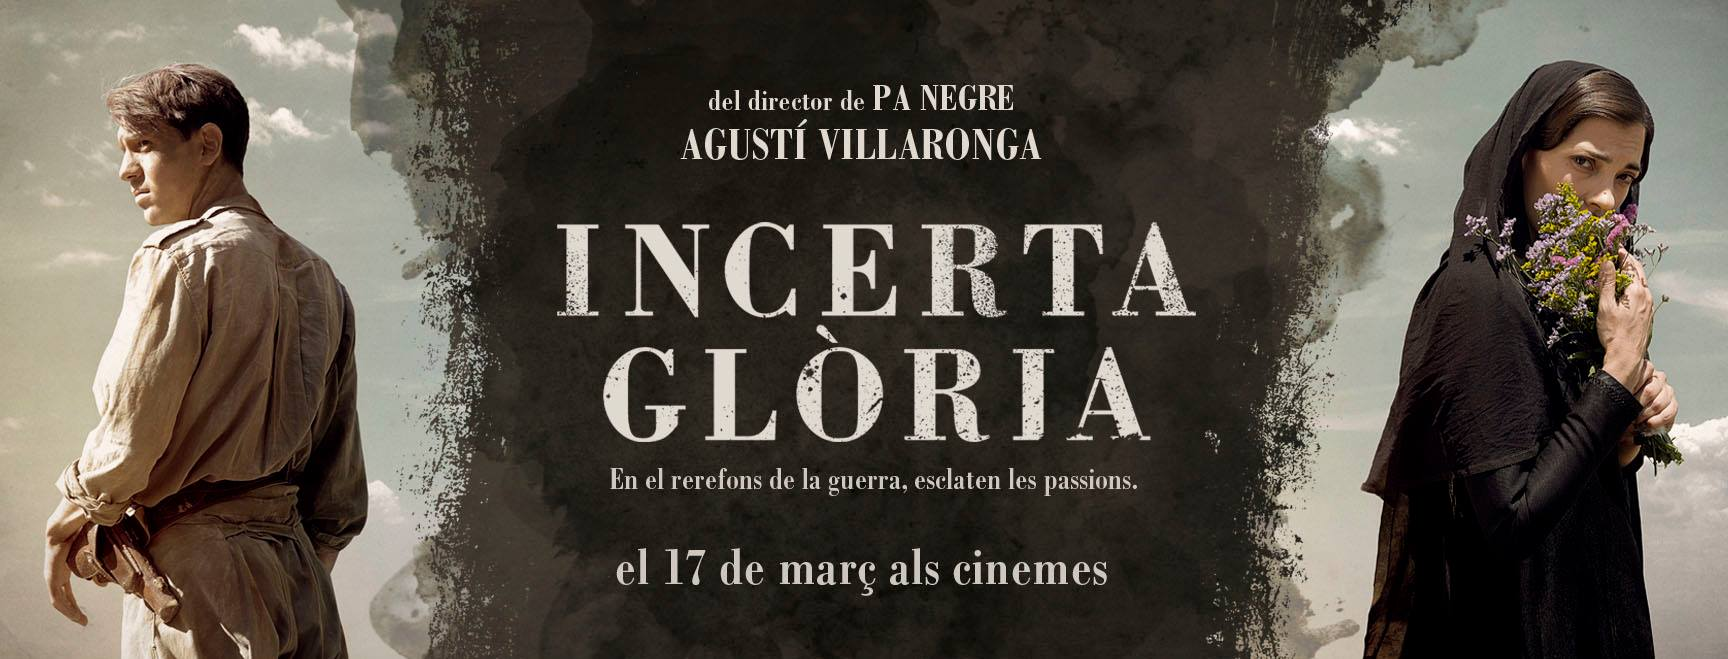 INCERTA GLORIA PDF